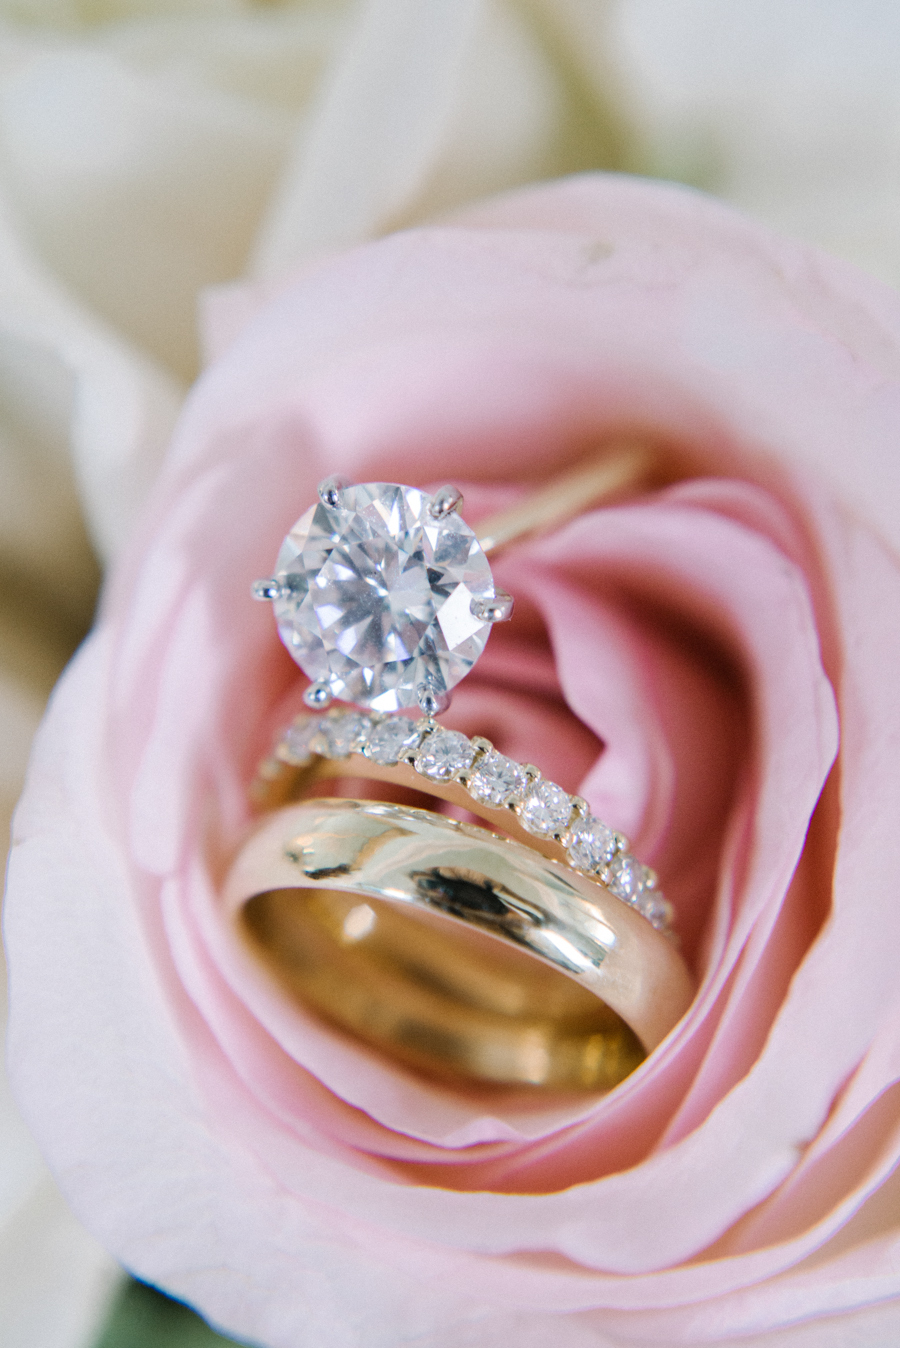 engagement rings and flowers 15 perfect shots. Black Bedroom Furniture Sets. Home Design Ideas